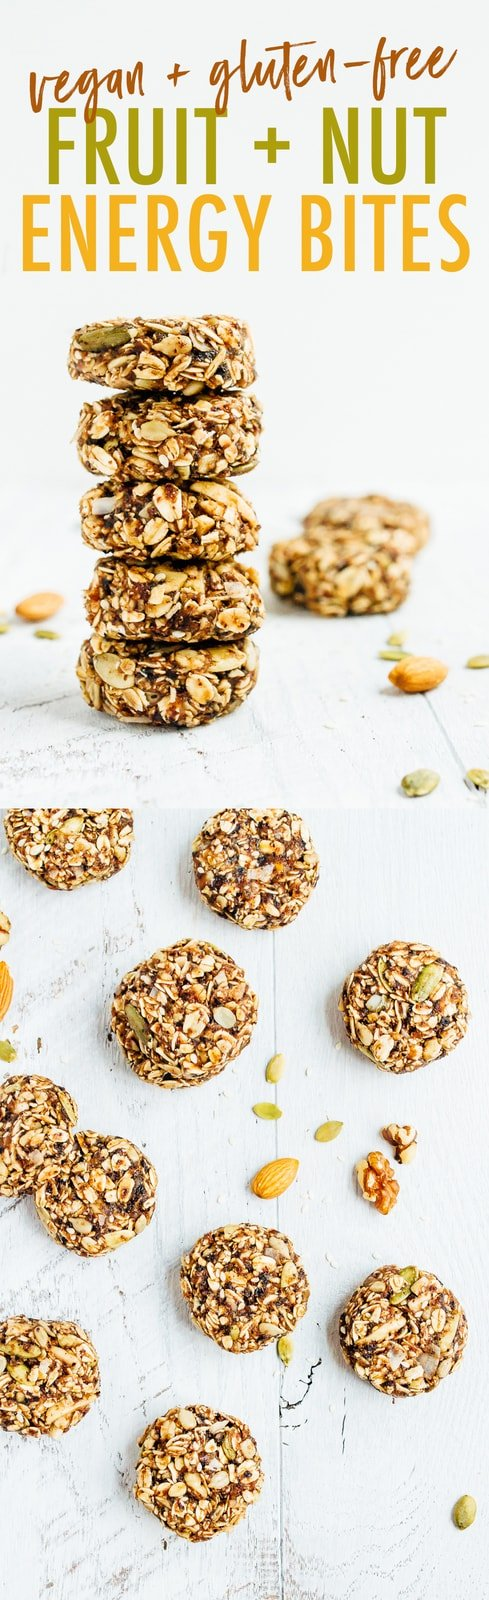 BIRD FOOD ENERGY BITES! Made with whole grain oats, nuts, seeds and dried fruit, these bites are a nutrient-rich treat perfect for on-the-go snacking. Vegan + gluten-free.